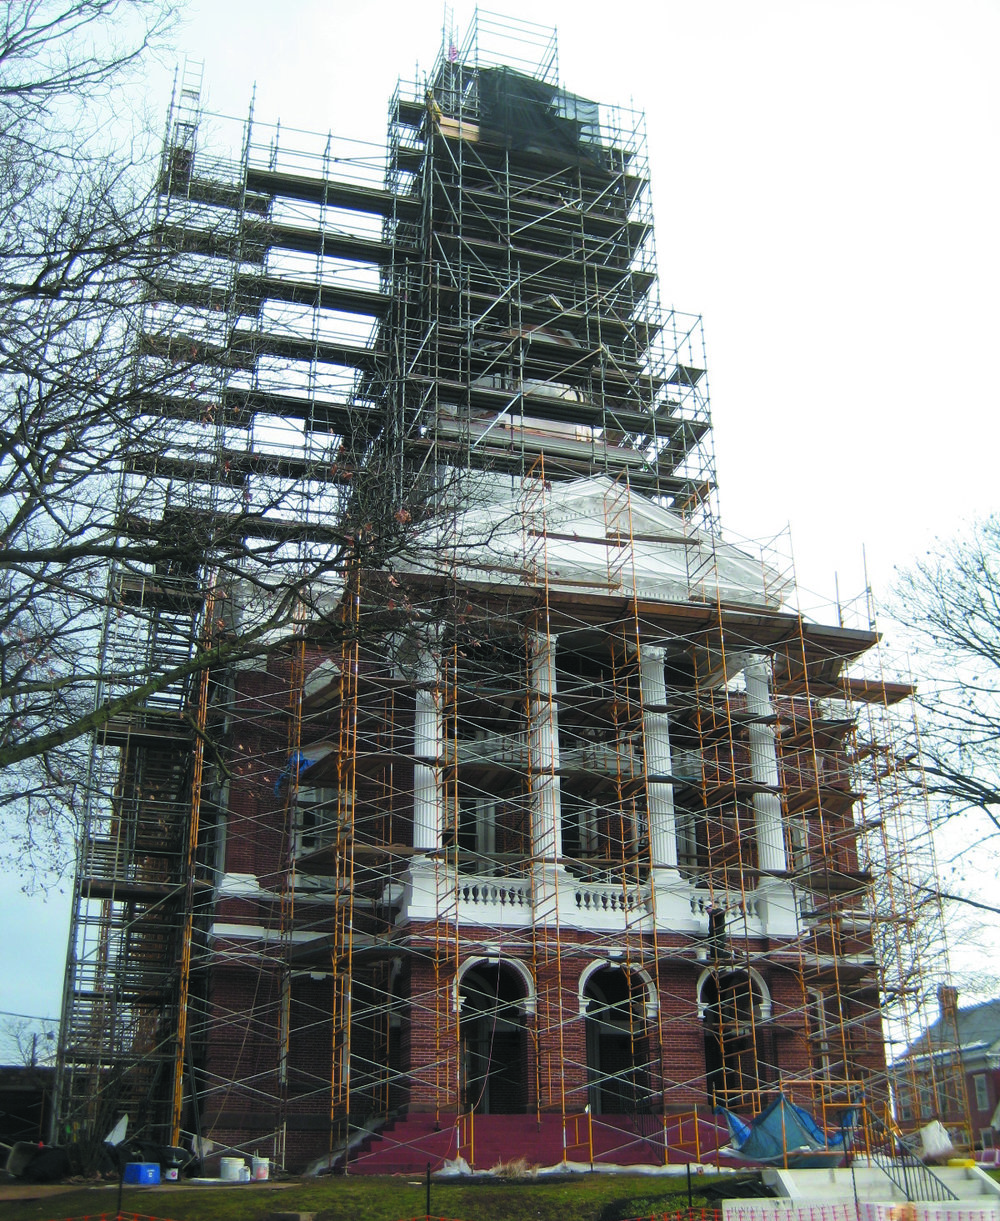 juniata_scaffold.JPG